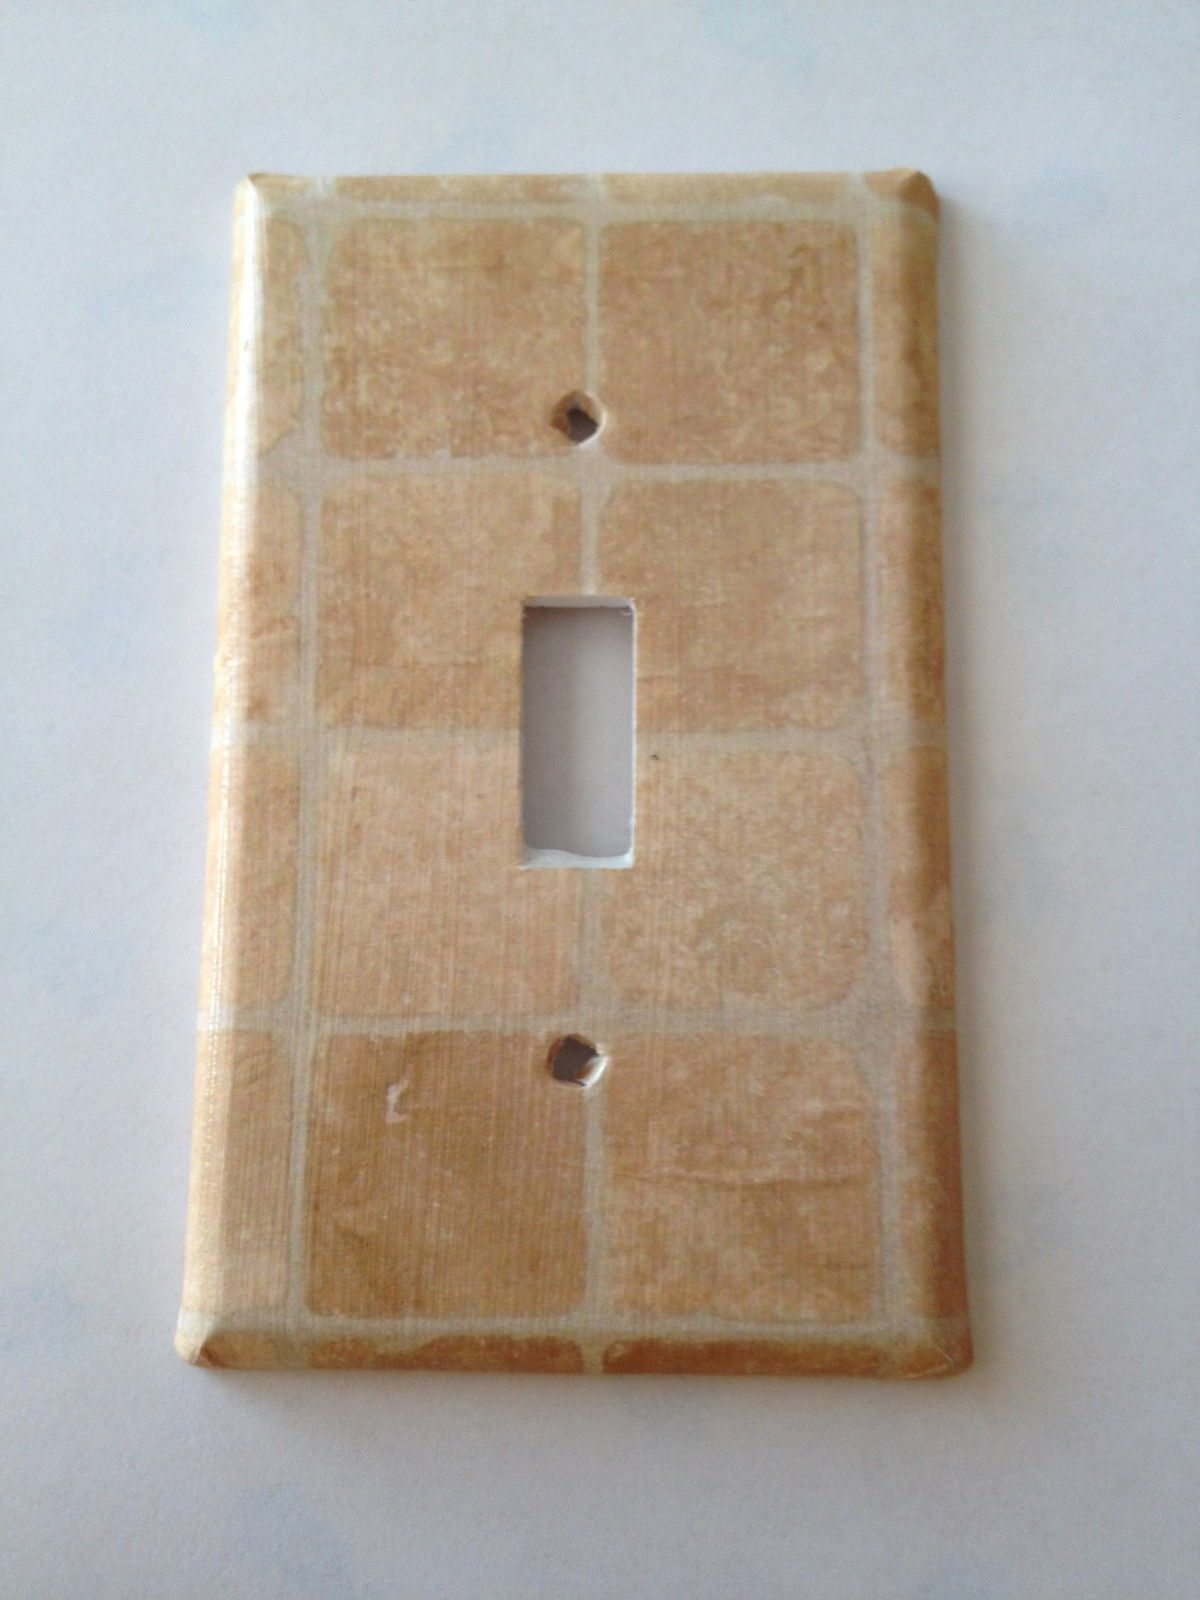 Italian stone tiles light switch covers home decor outlet for Decor light switch